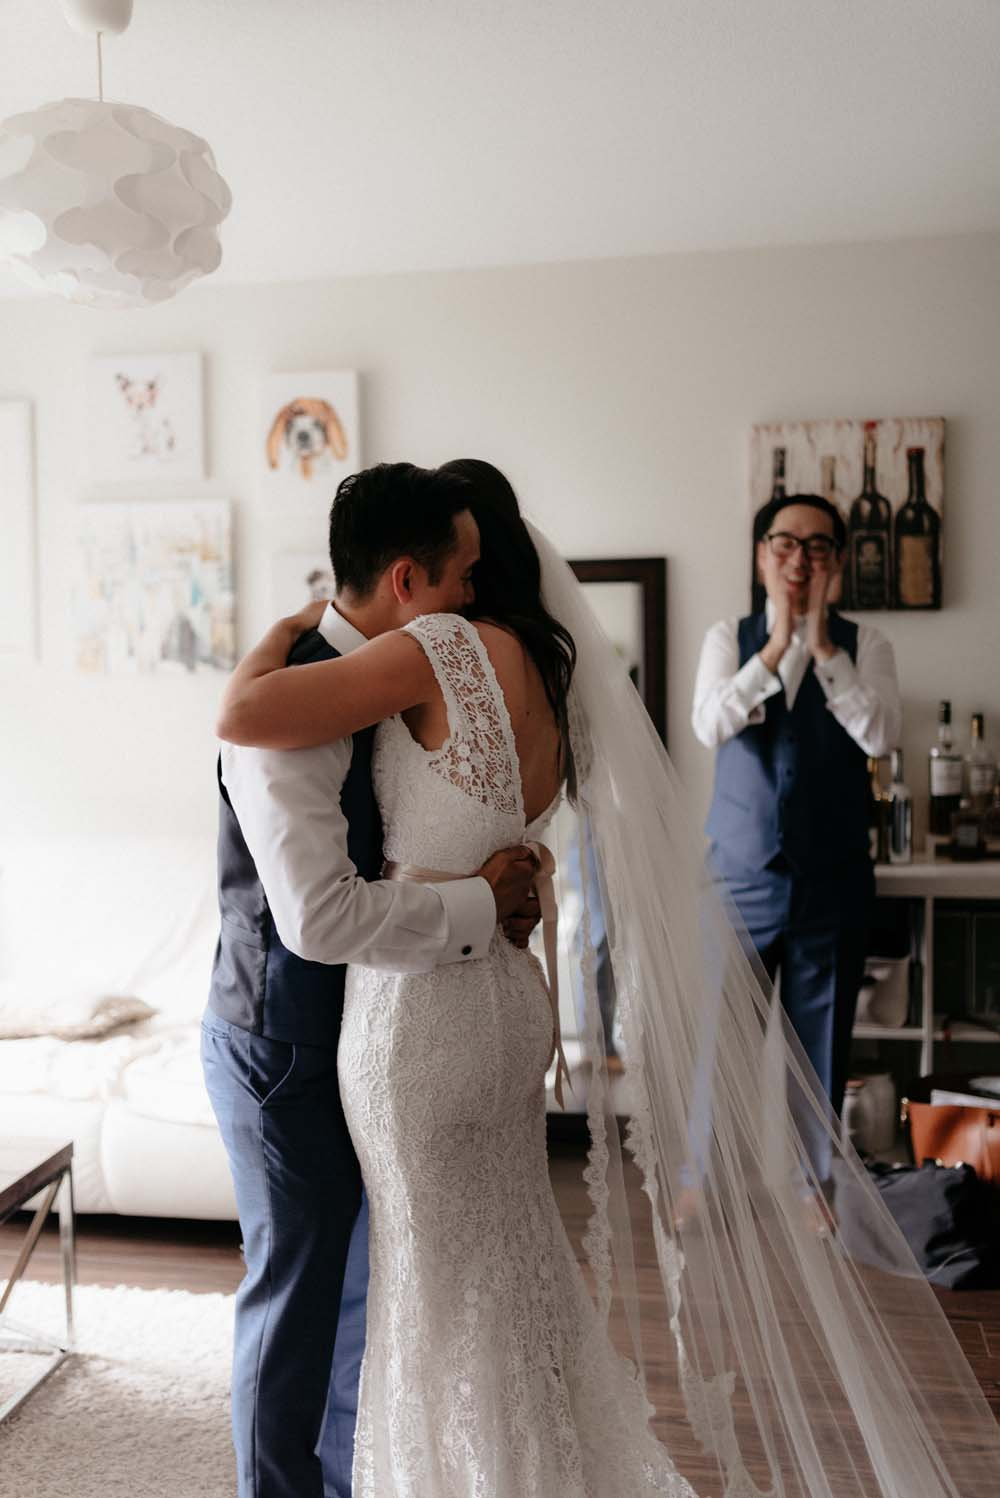 A Multicultural Wedding At The UBC Botanical Garden in Vancouver - first look